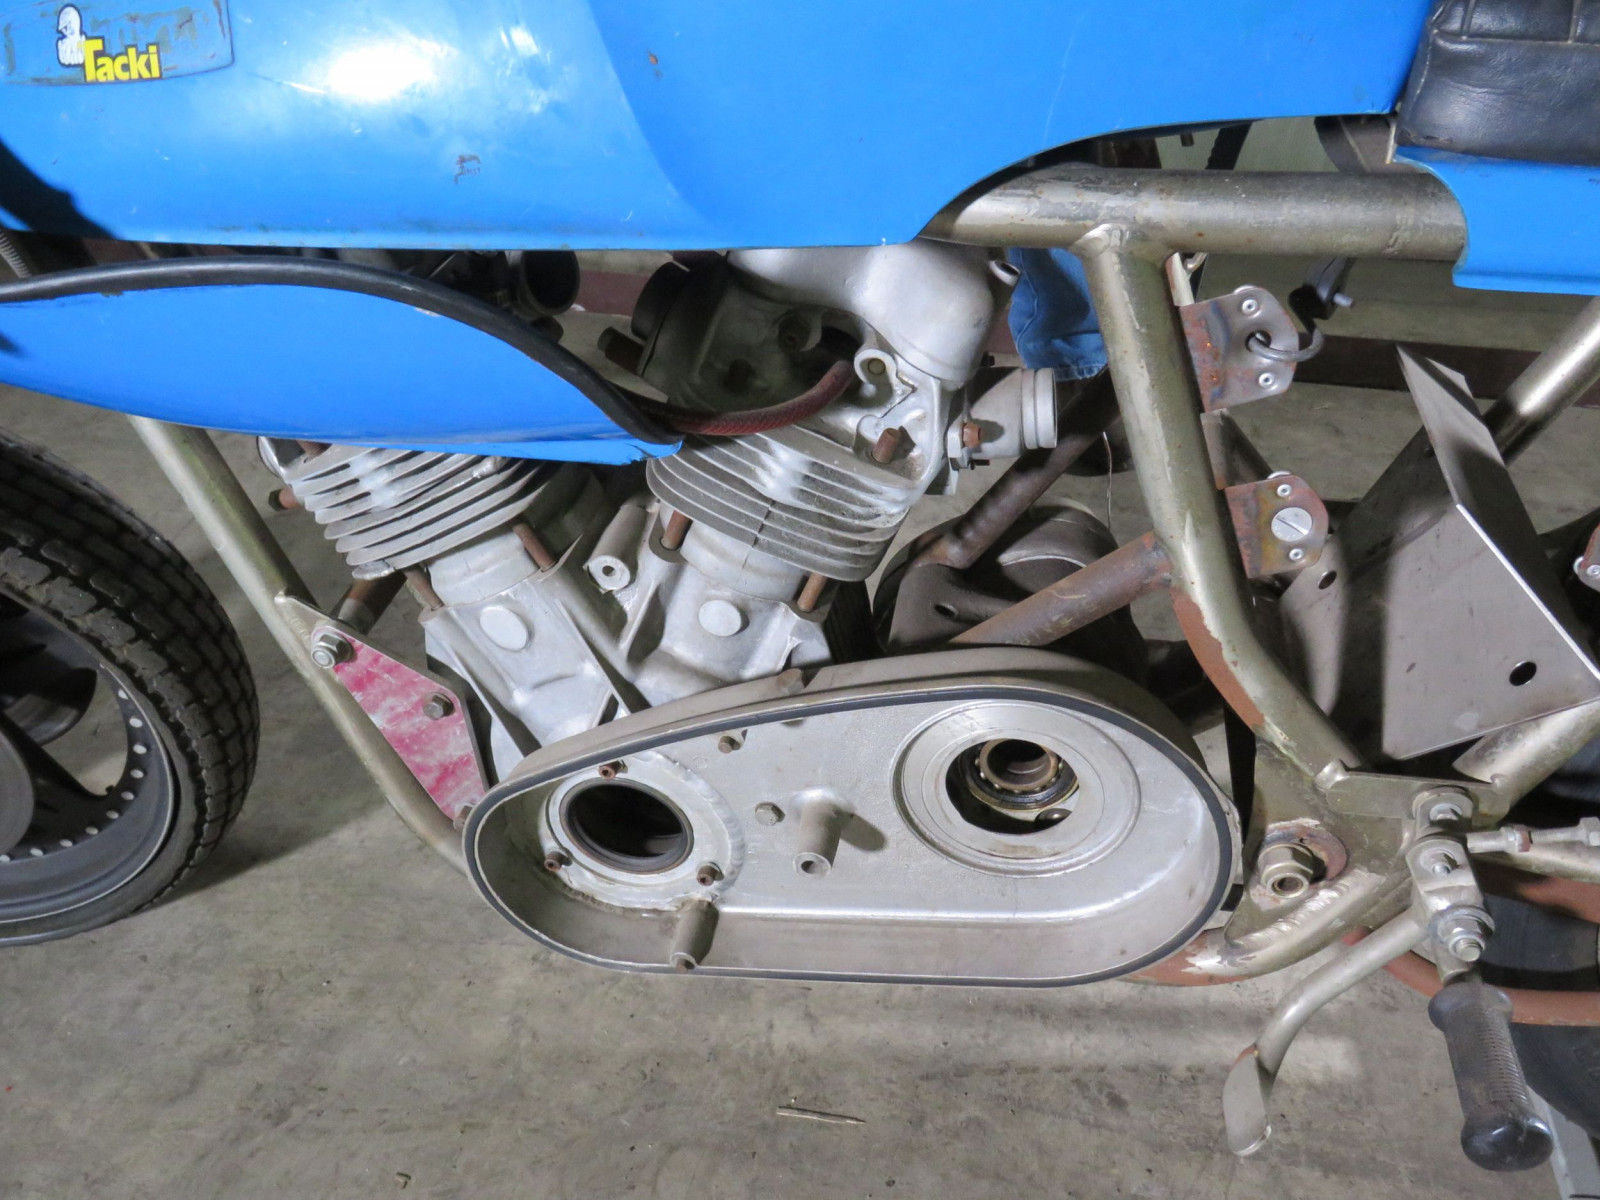 Homemade Mystery Motorcycle - Image 5